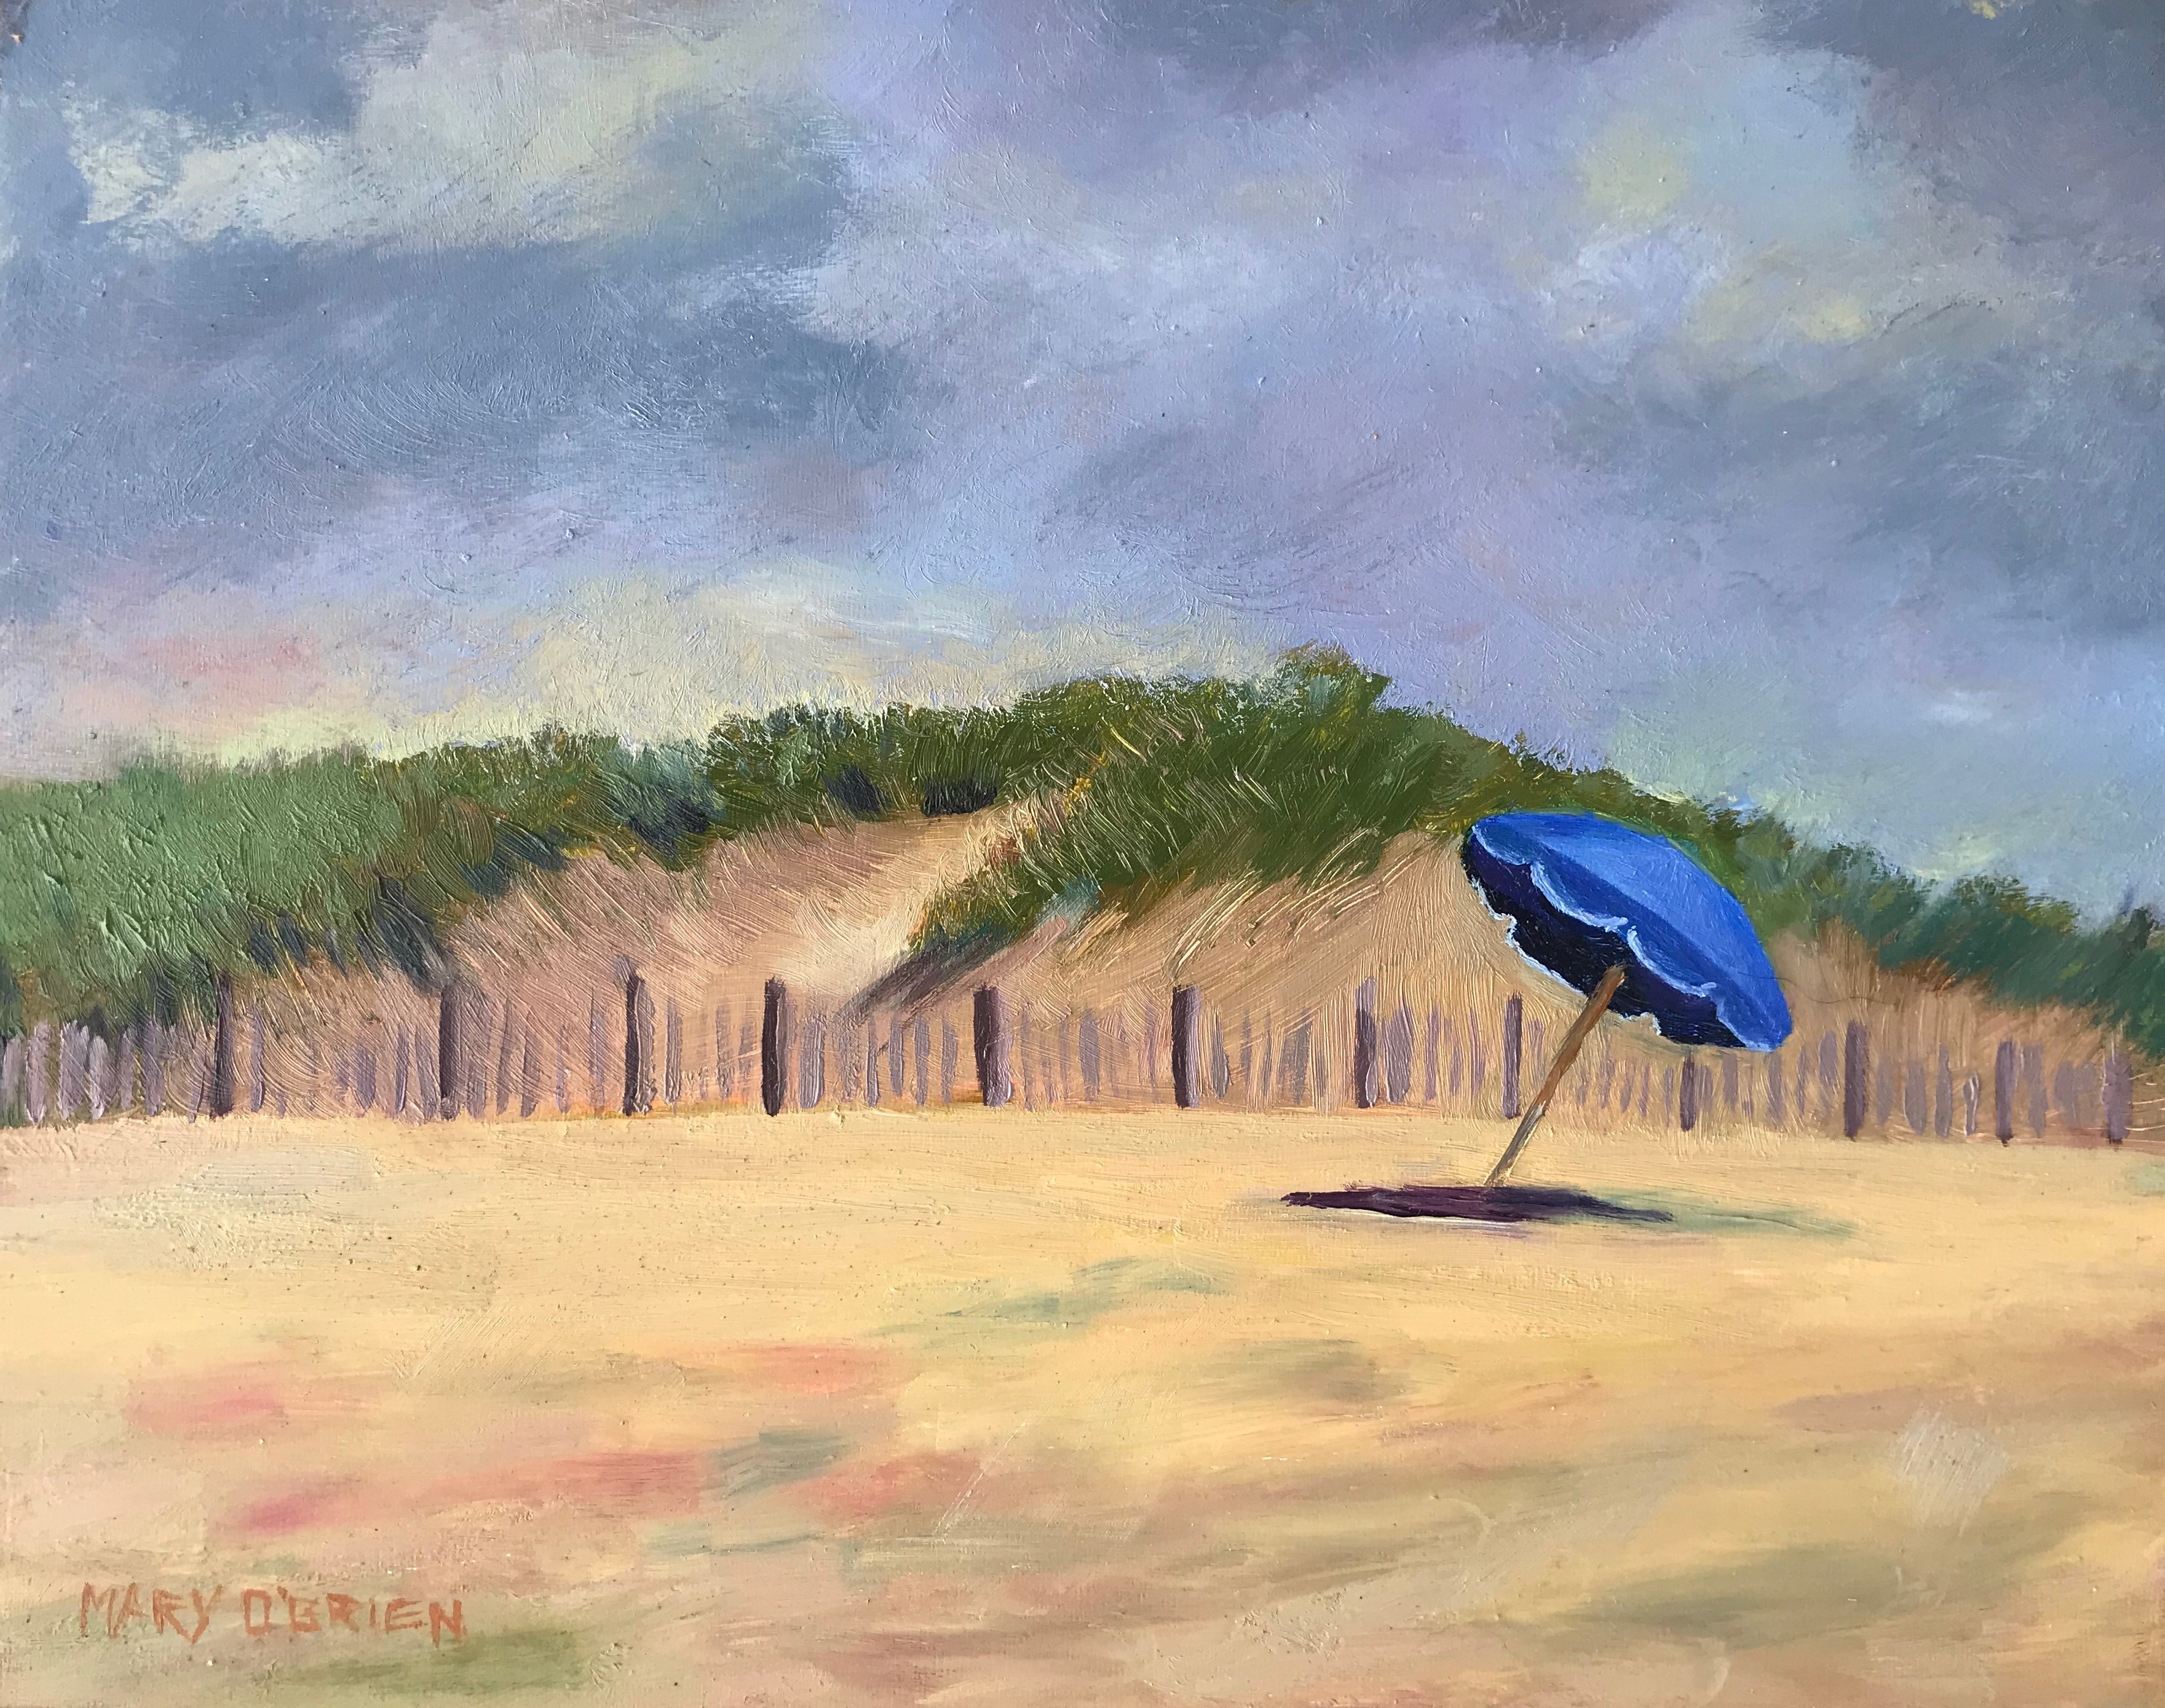 OBrien_Blue Umbrella